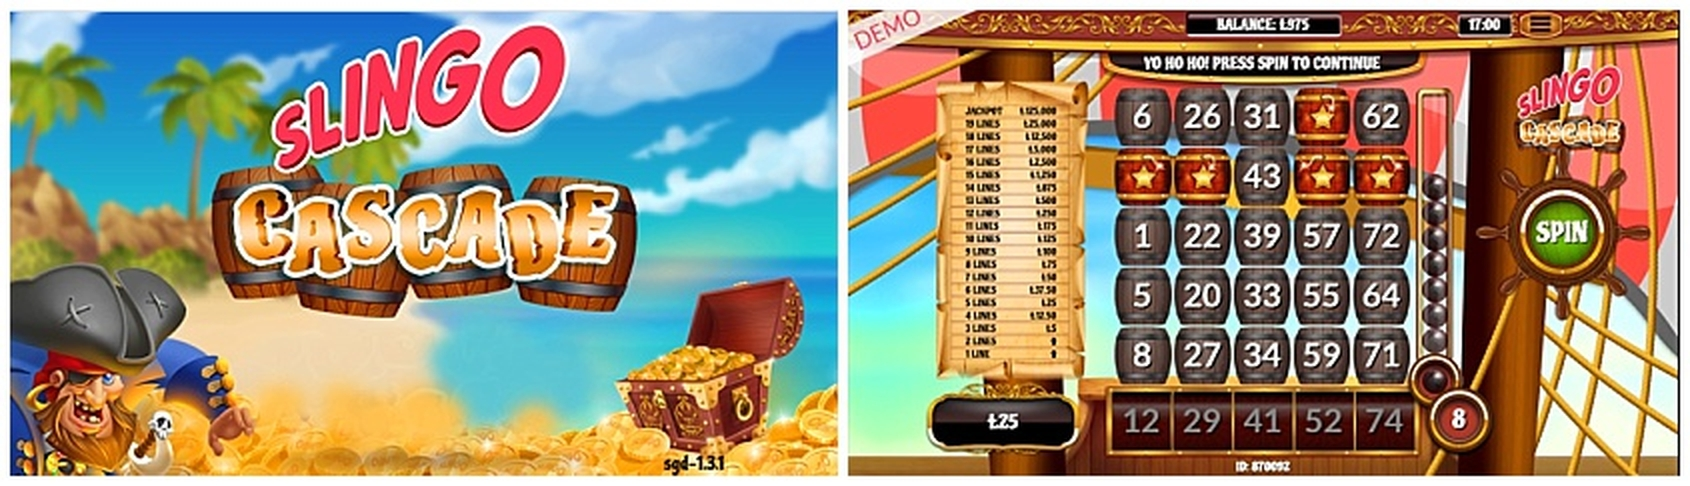 The Slingo Cascade Online Slot Demo Game by Slingo